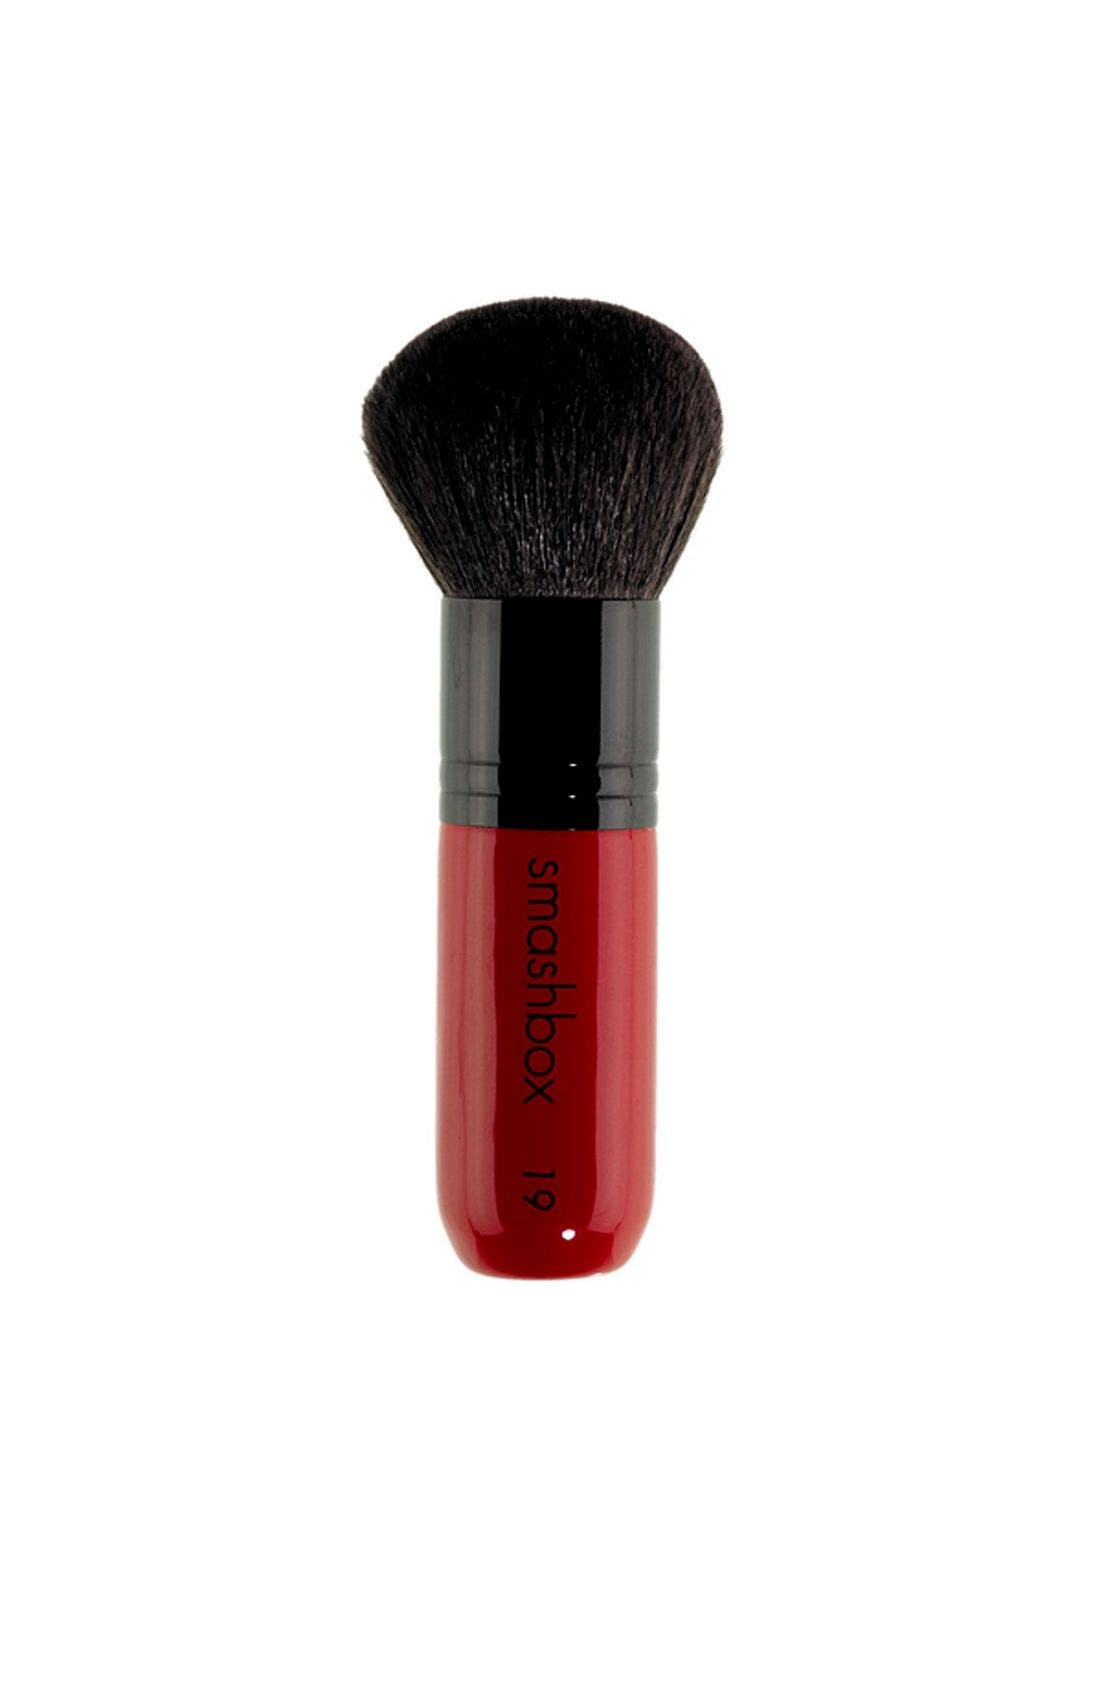 Face & Body Brush #19, Main, color, 000